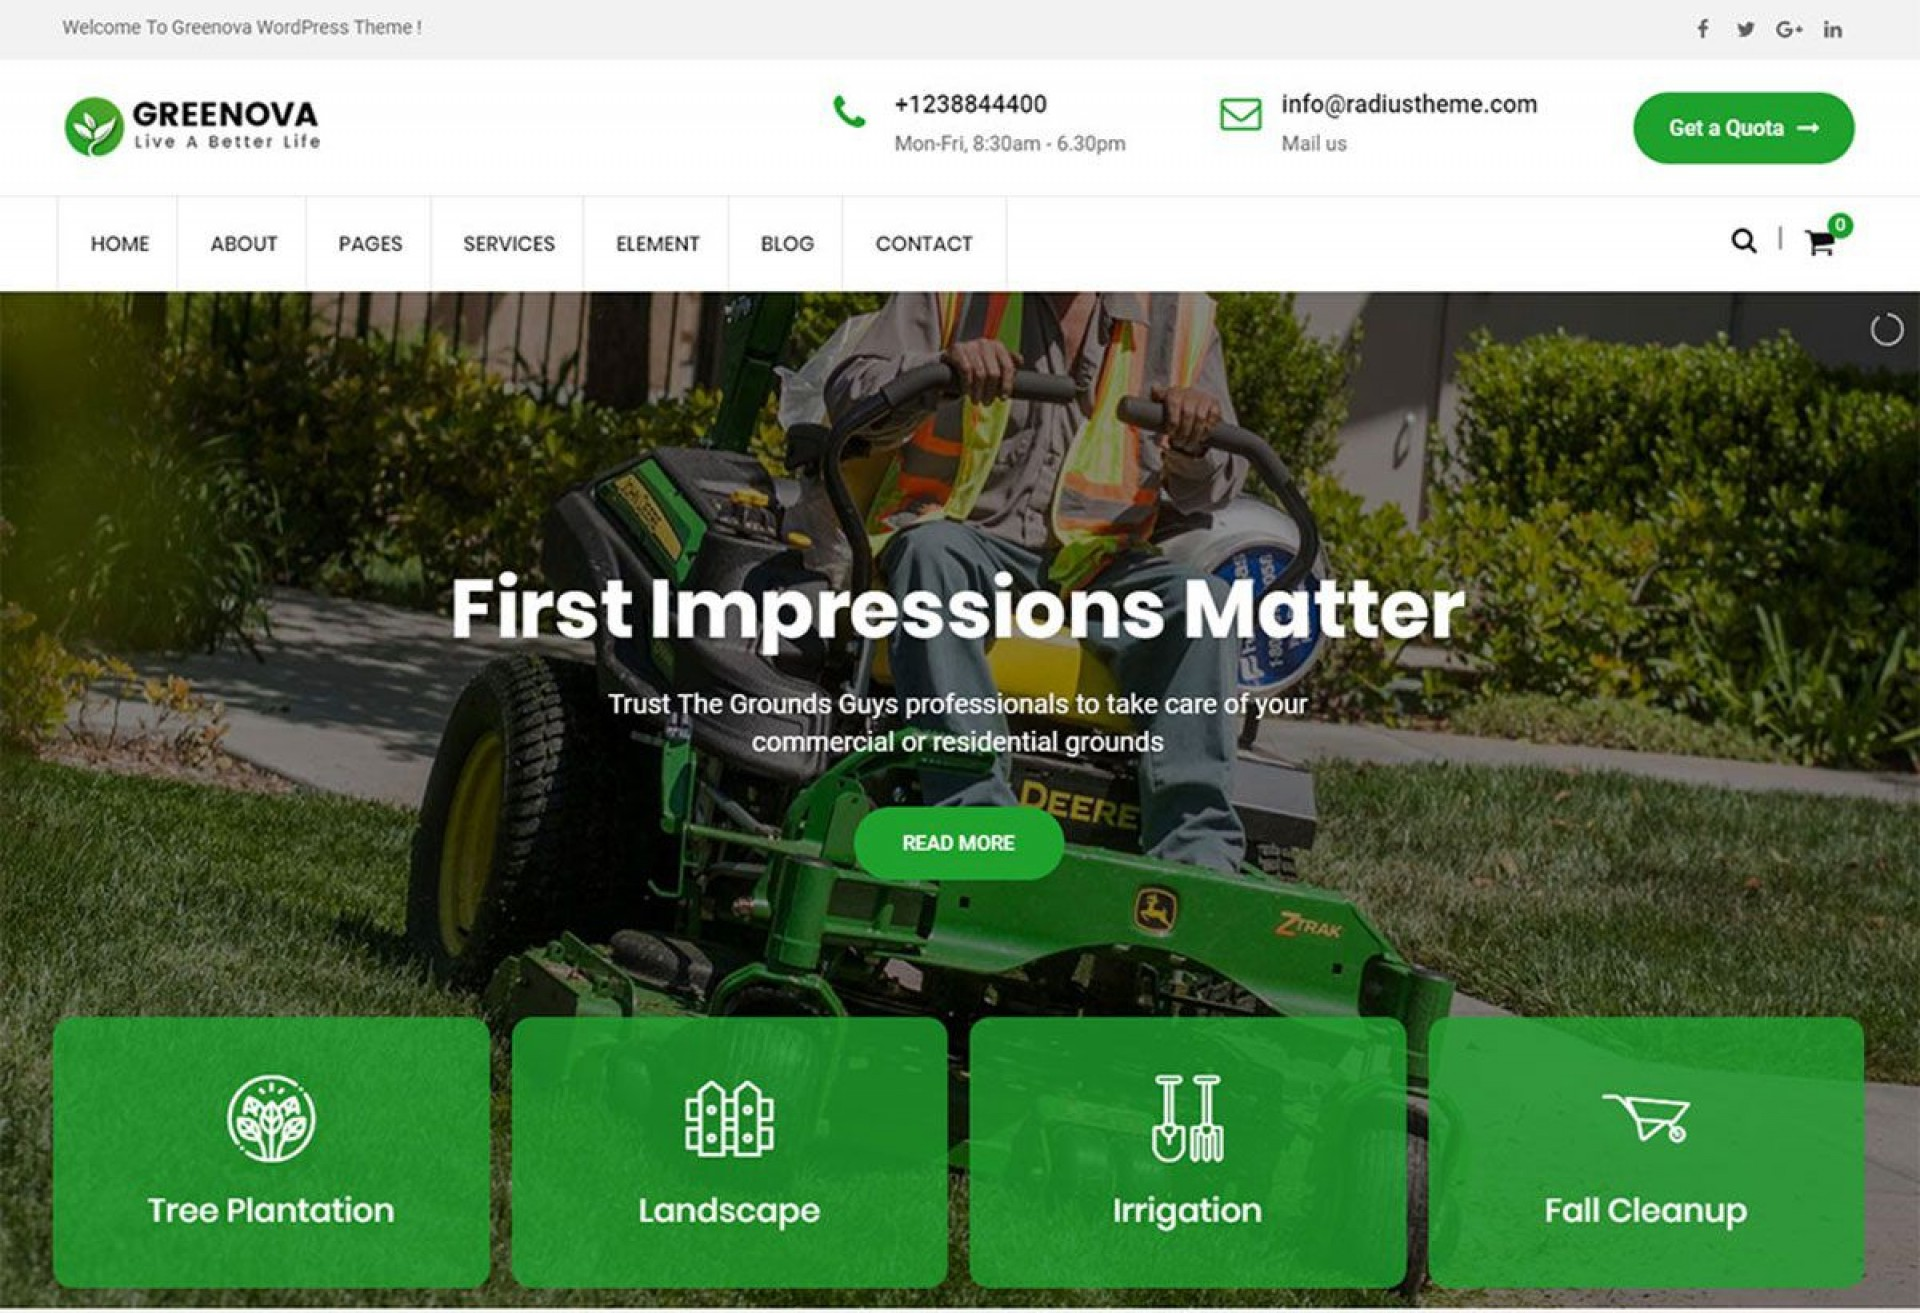 005 Remarkable Lawn Care Website Template Image 1920